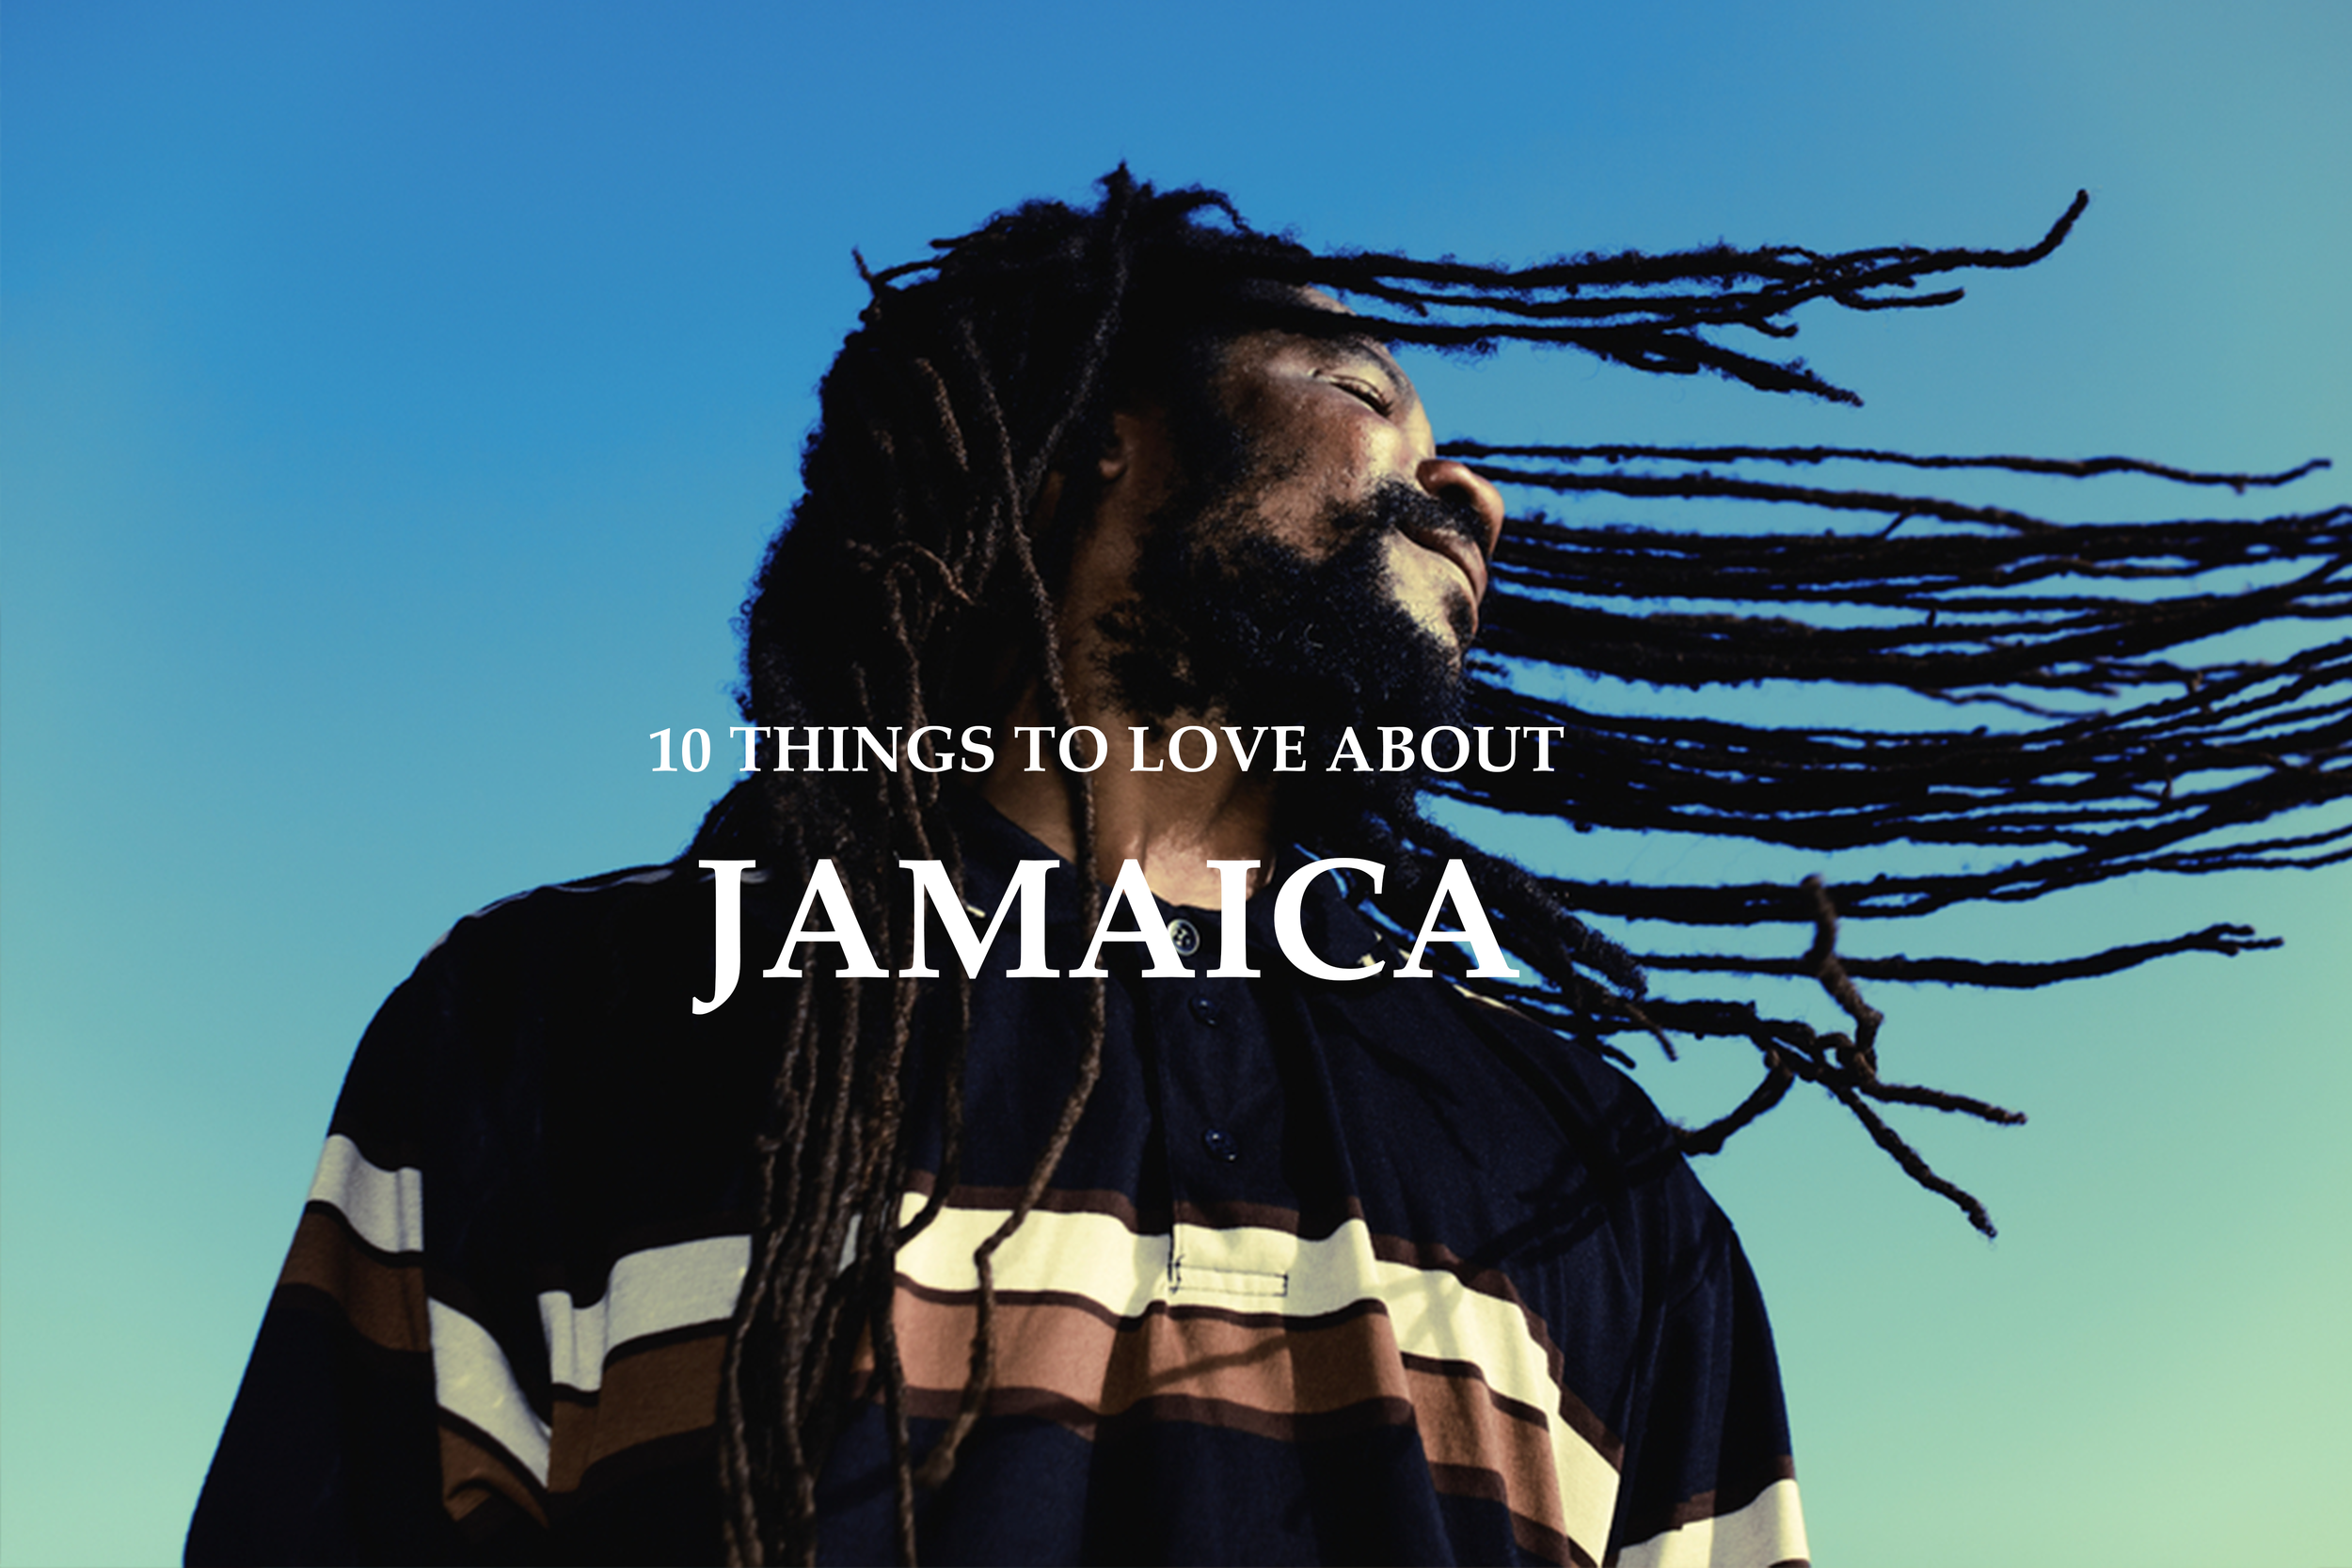 Things to love about Jamaica